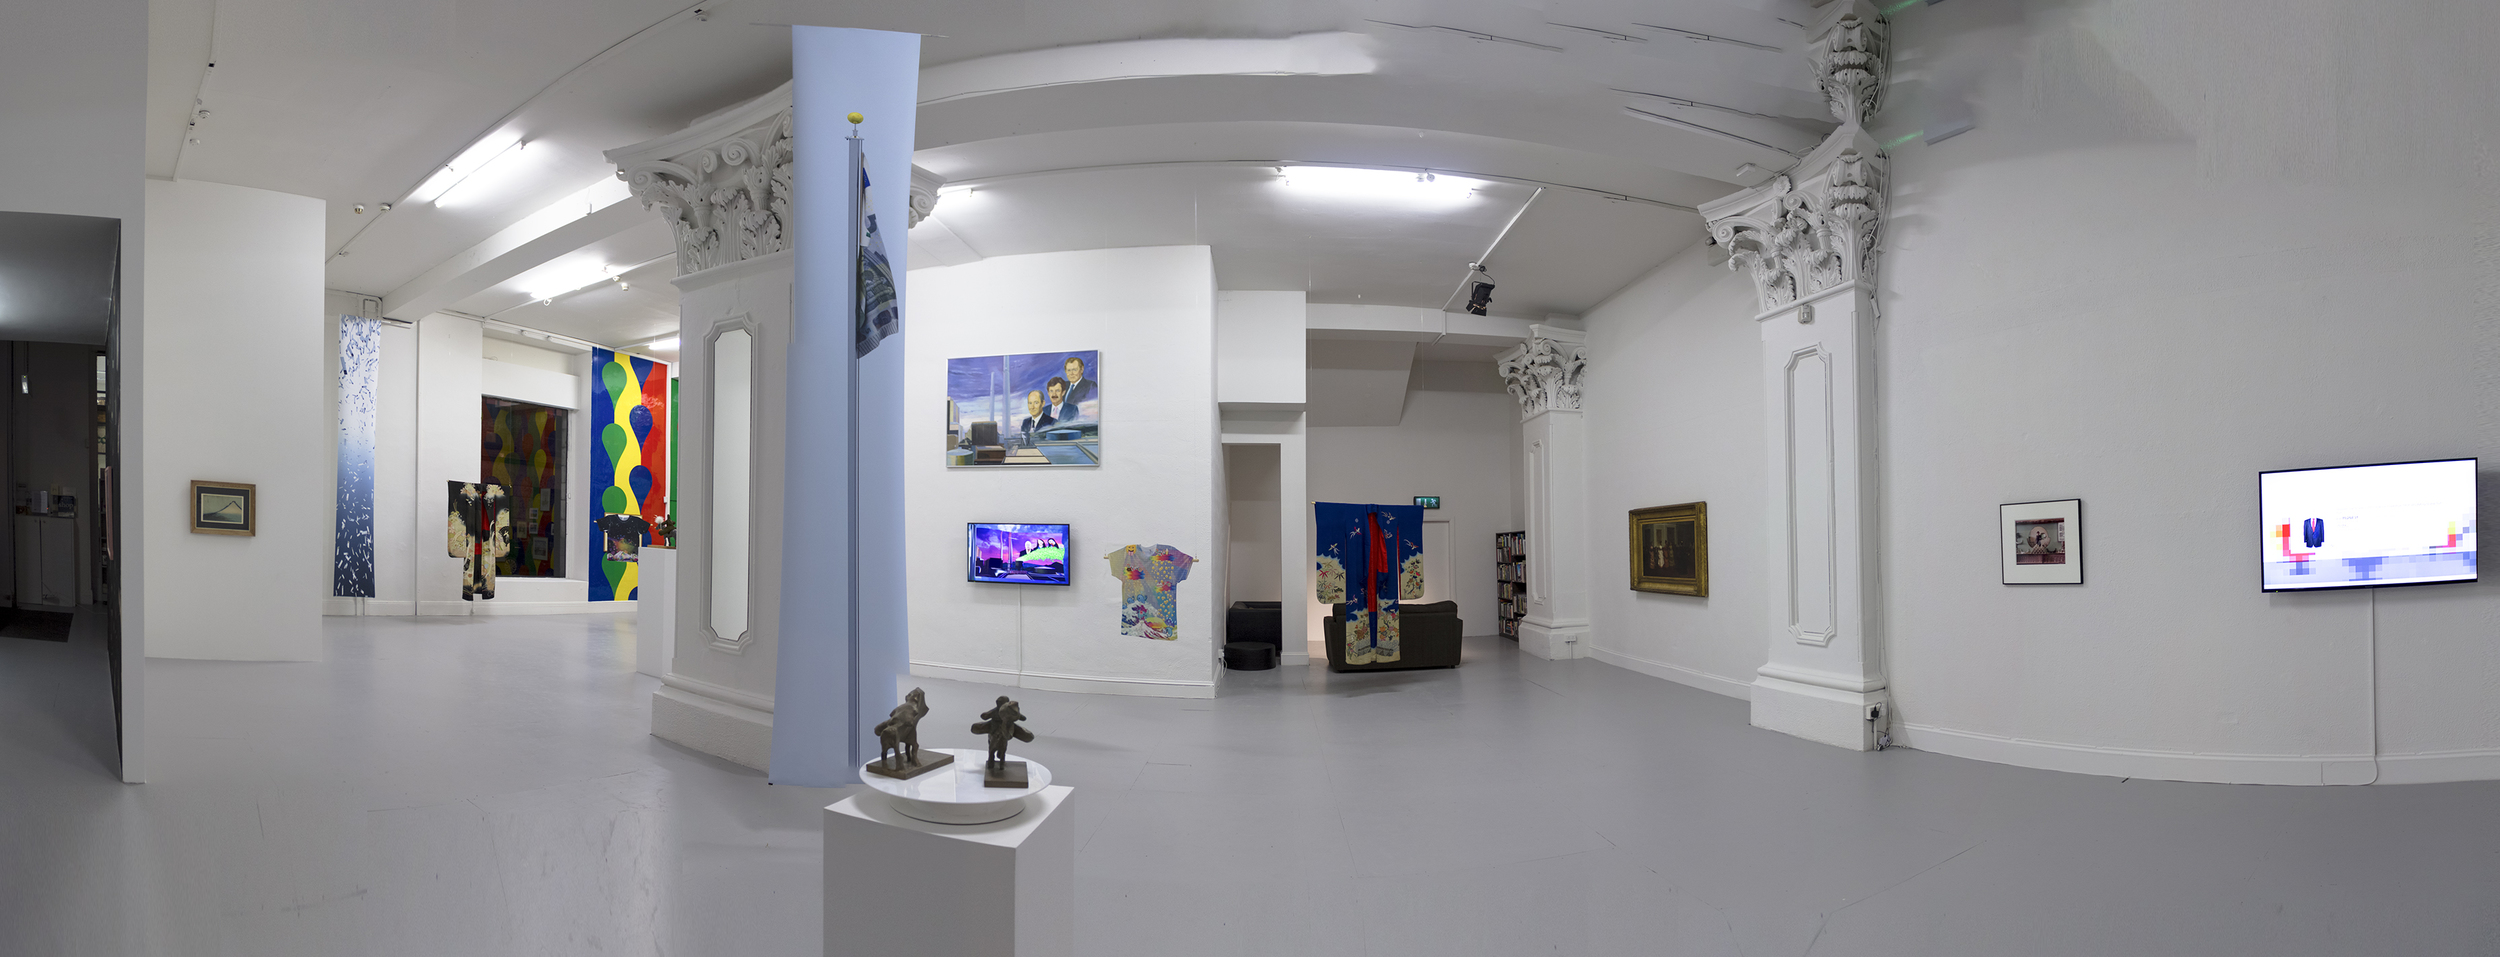 Installation view of The Parallax View (2014-2015)